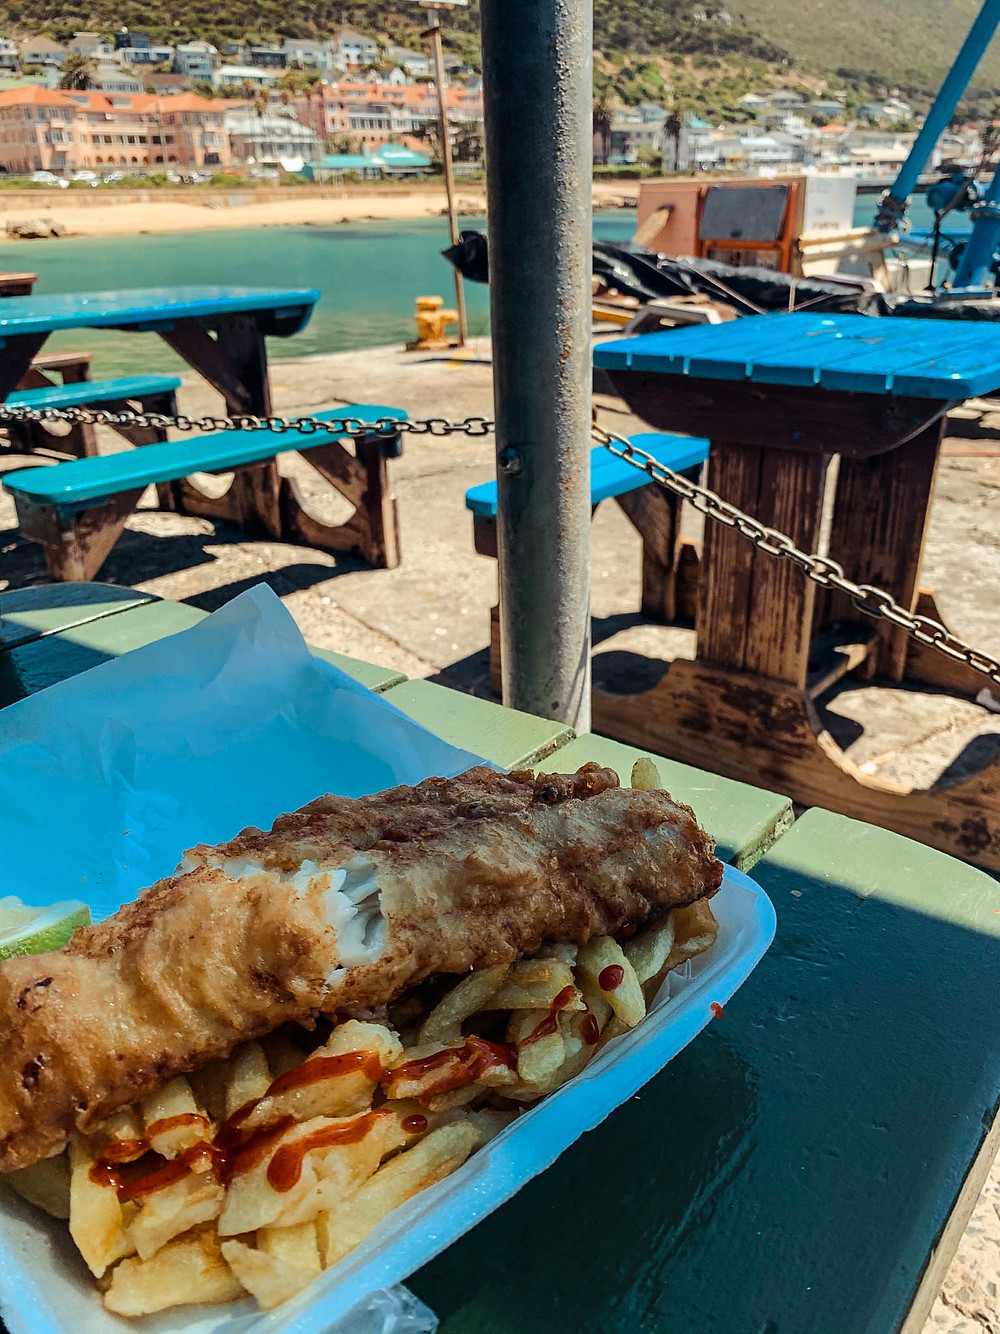 Kalky's famous - and enormous! - fish and chips